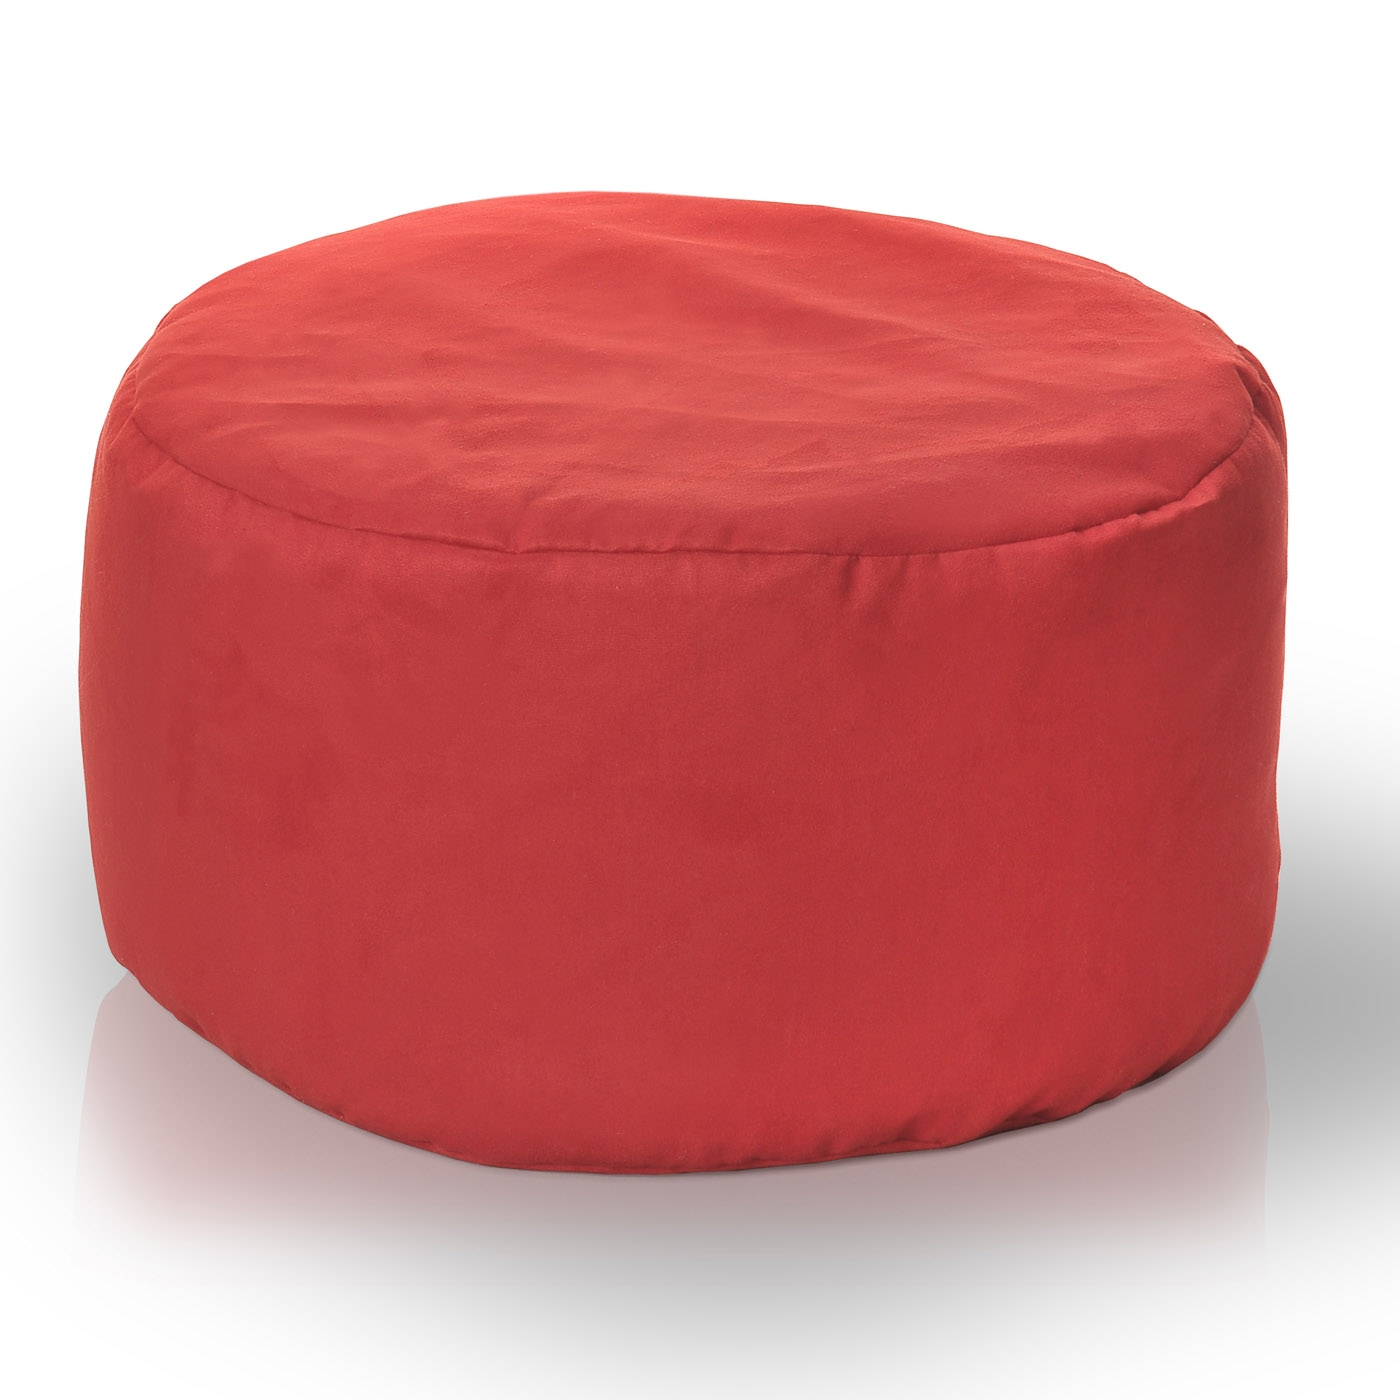 pouf sitting filled with styrofoam balls 40x65cm ebay. Black Bedroom Furniture Sets. Home Design Ideas